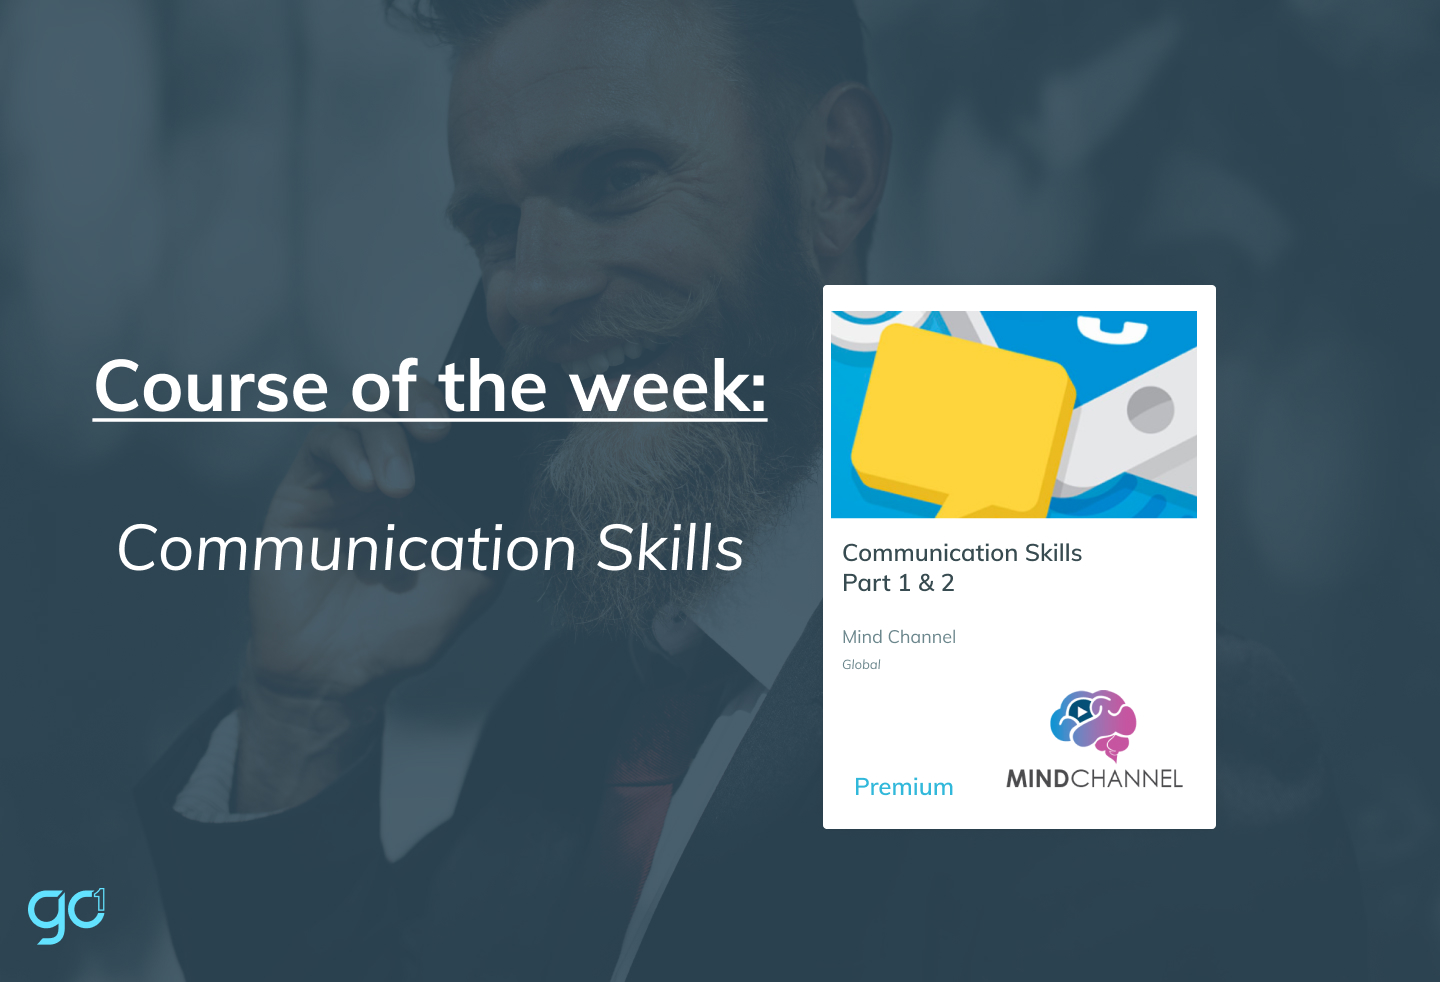 Course of the week: Communication Skills